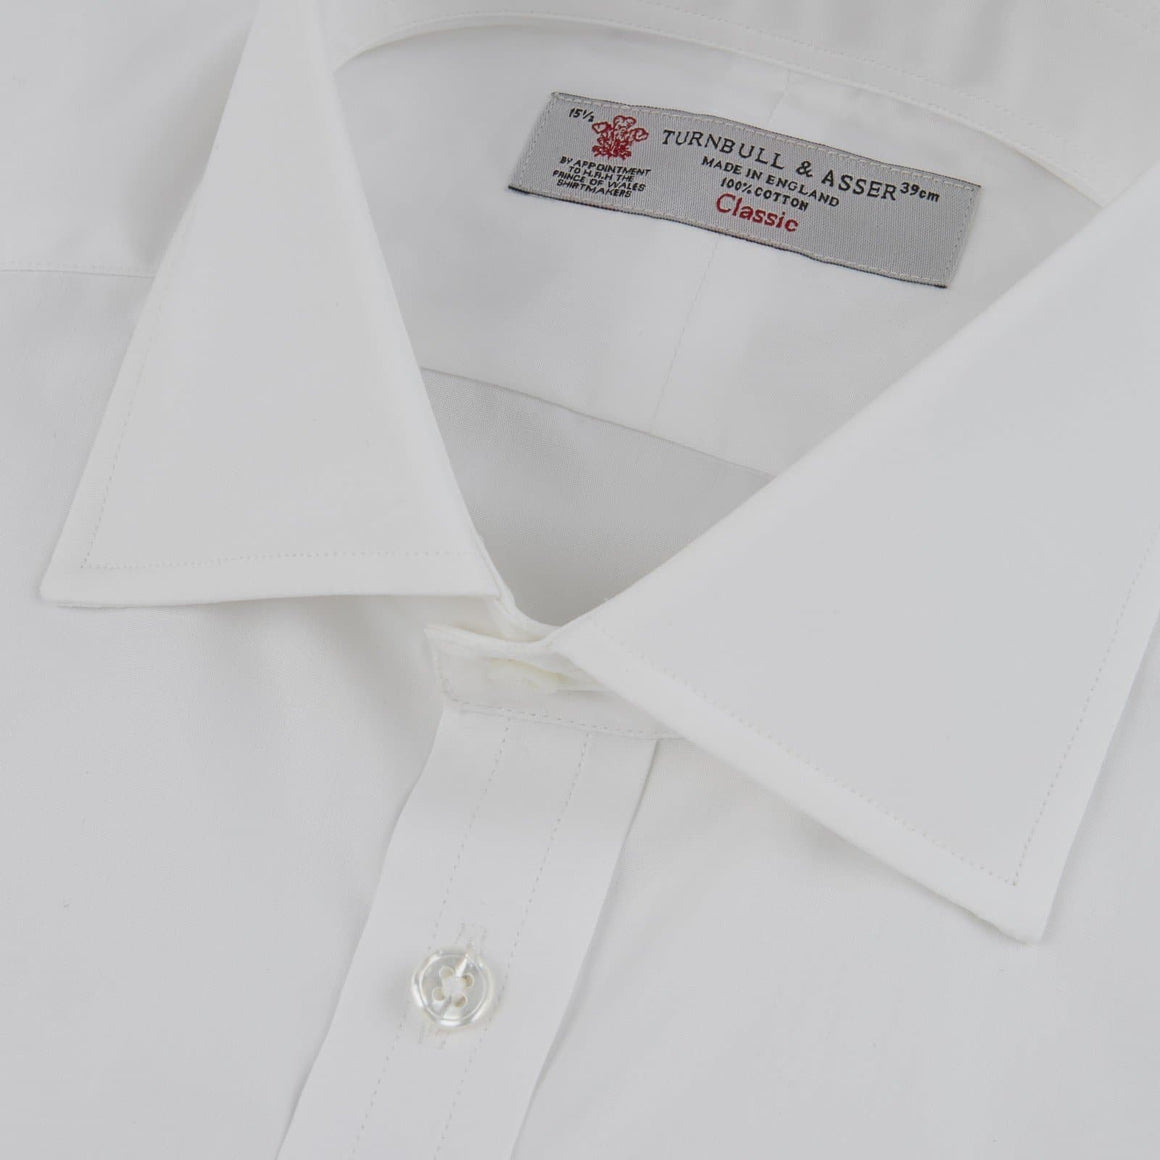 White Cotton Shirt by Turnbull & Asser - Dr. No Edition